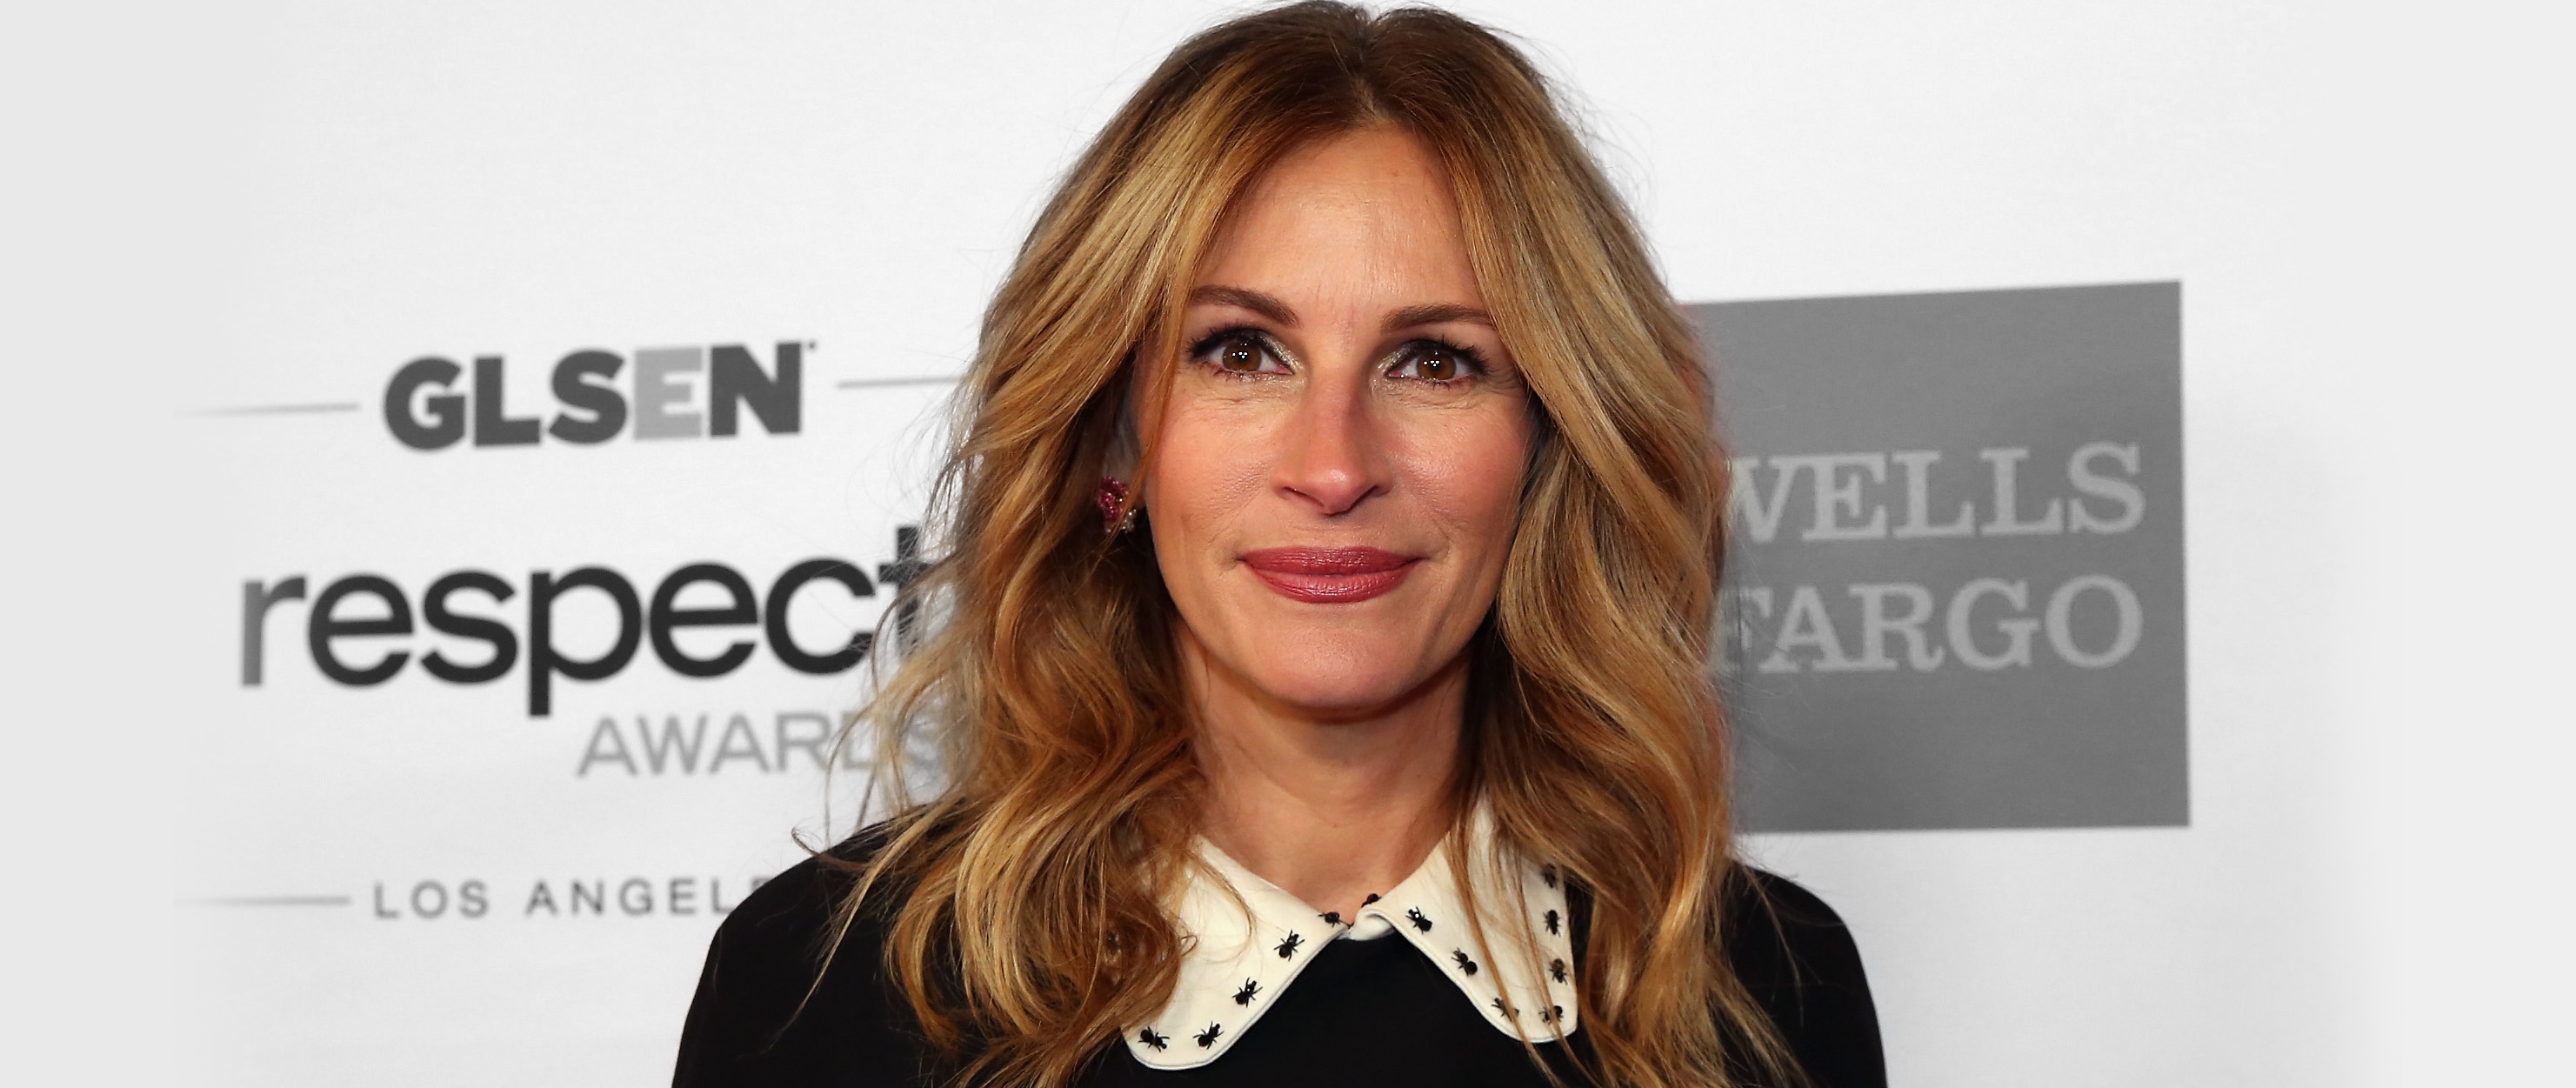 julia roberts_cover_GettyImages-616153902_master